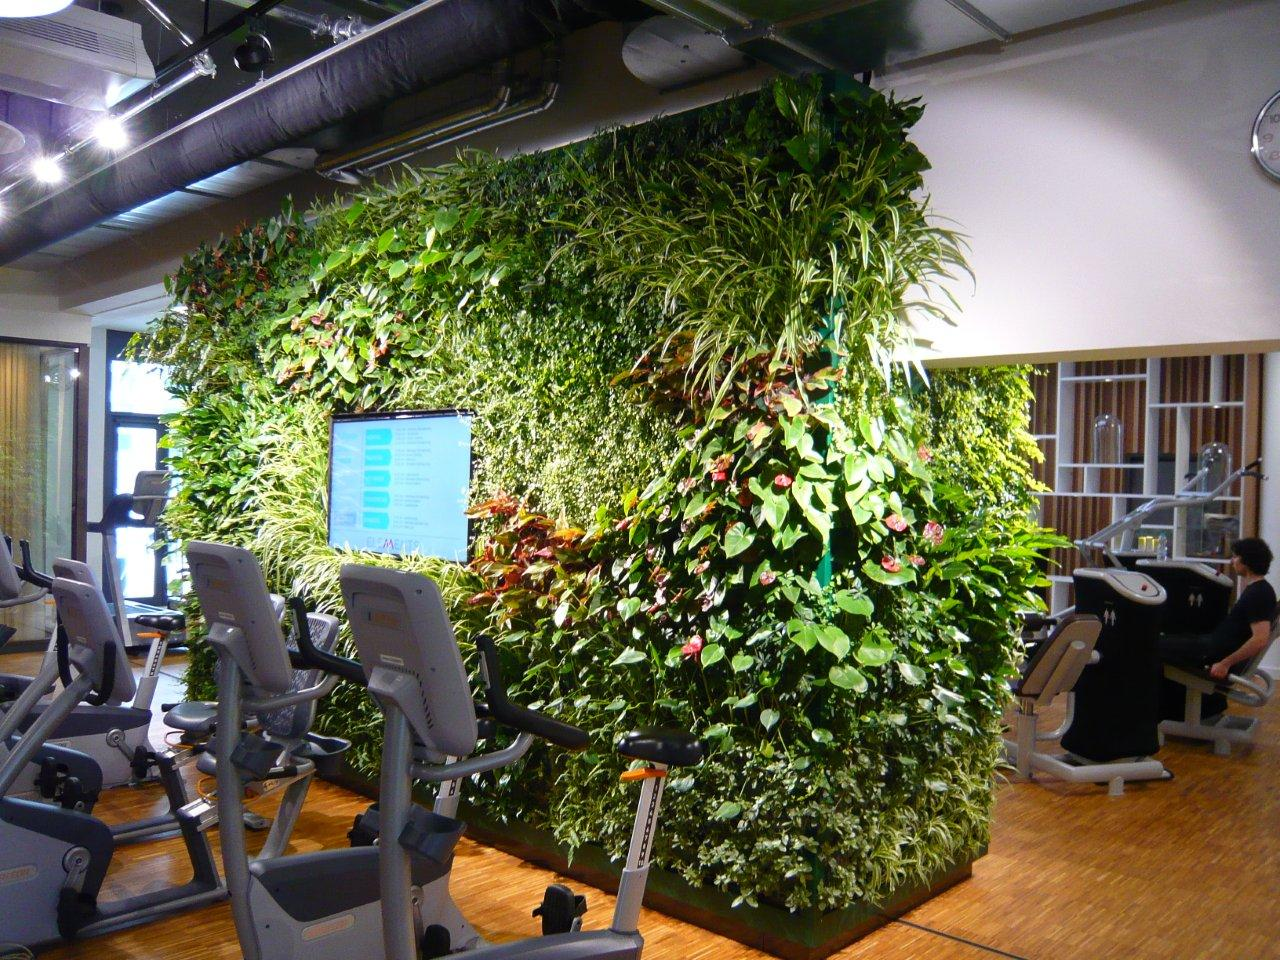 Beautiful Garden Wall by Suite Plants at a Fitness Center in Nürnberg, Germany